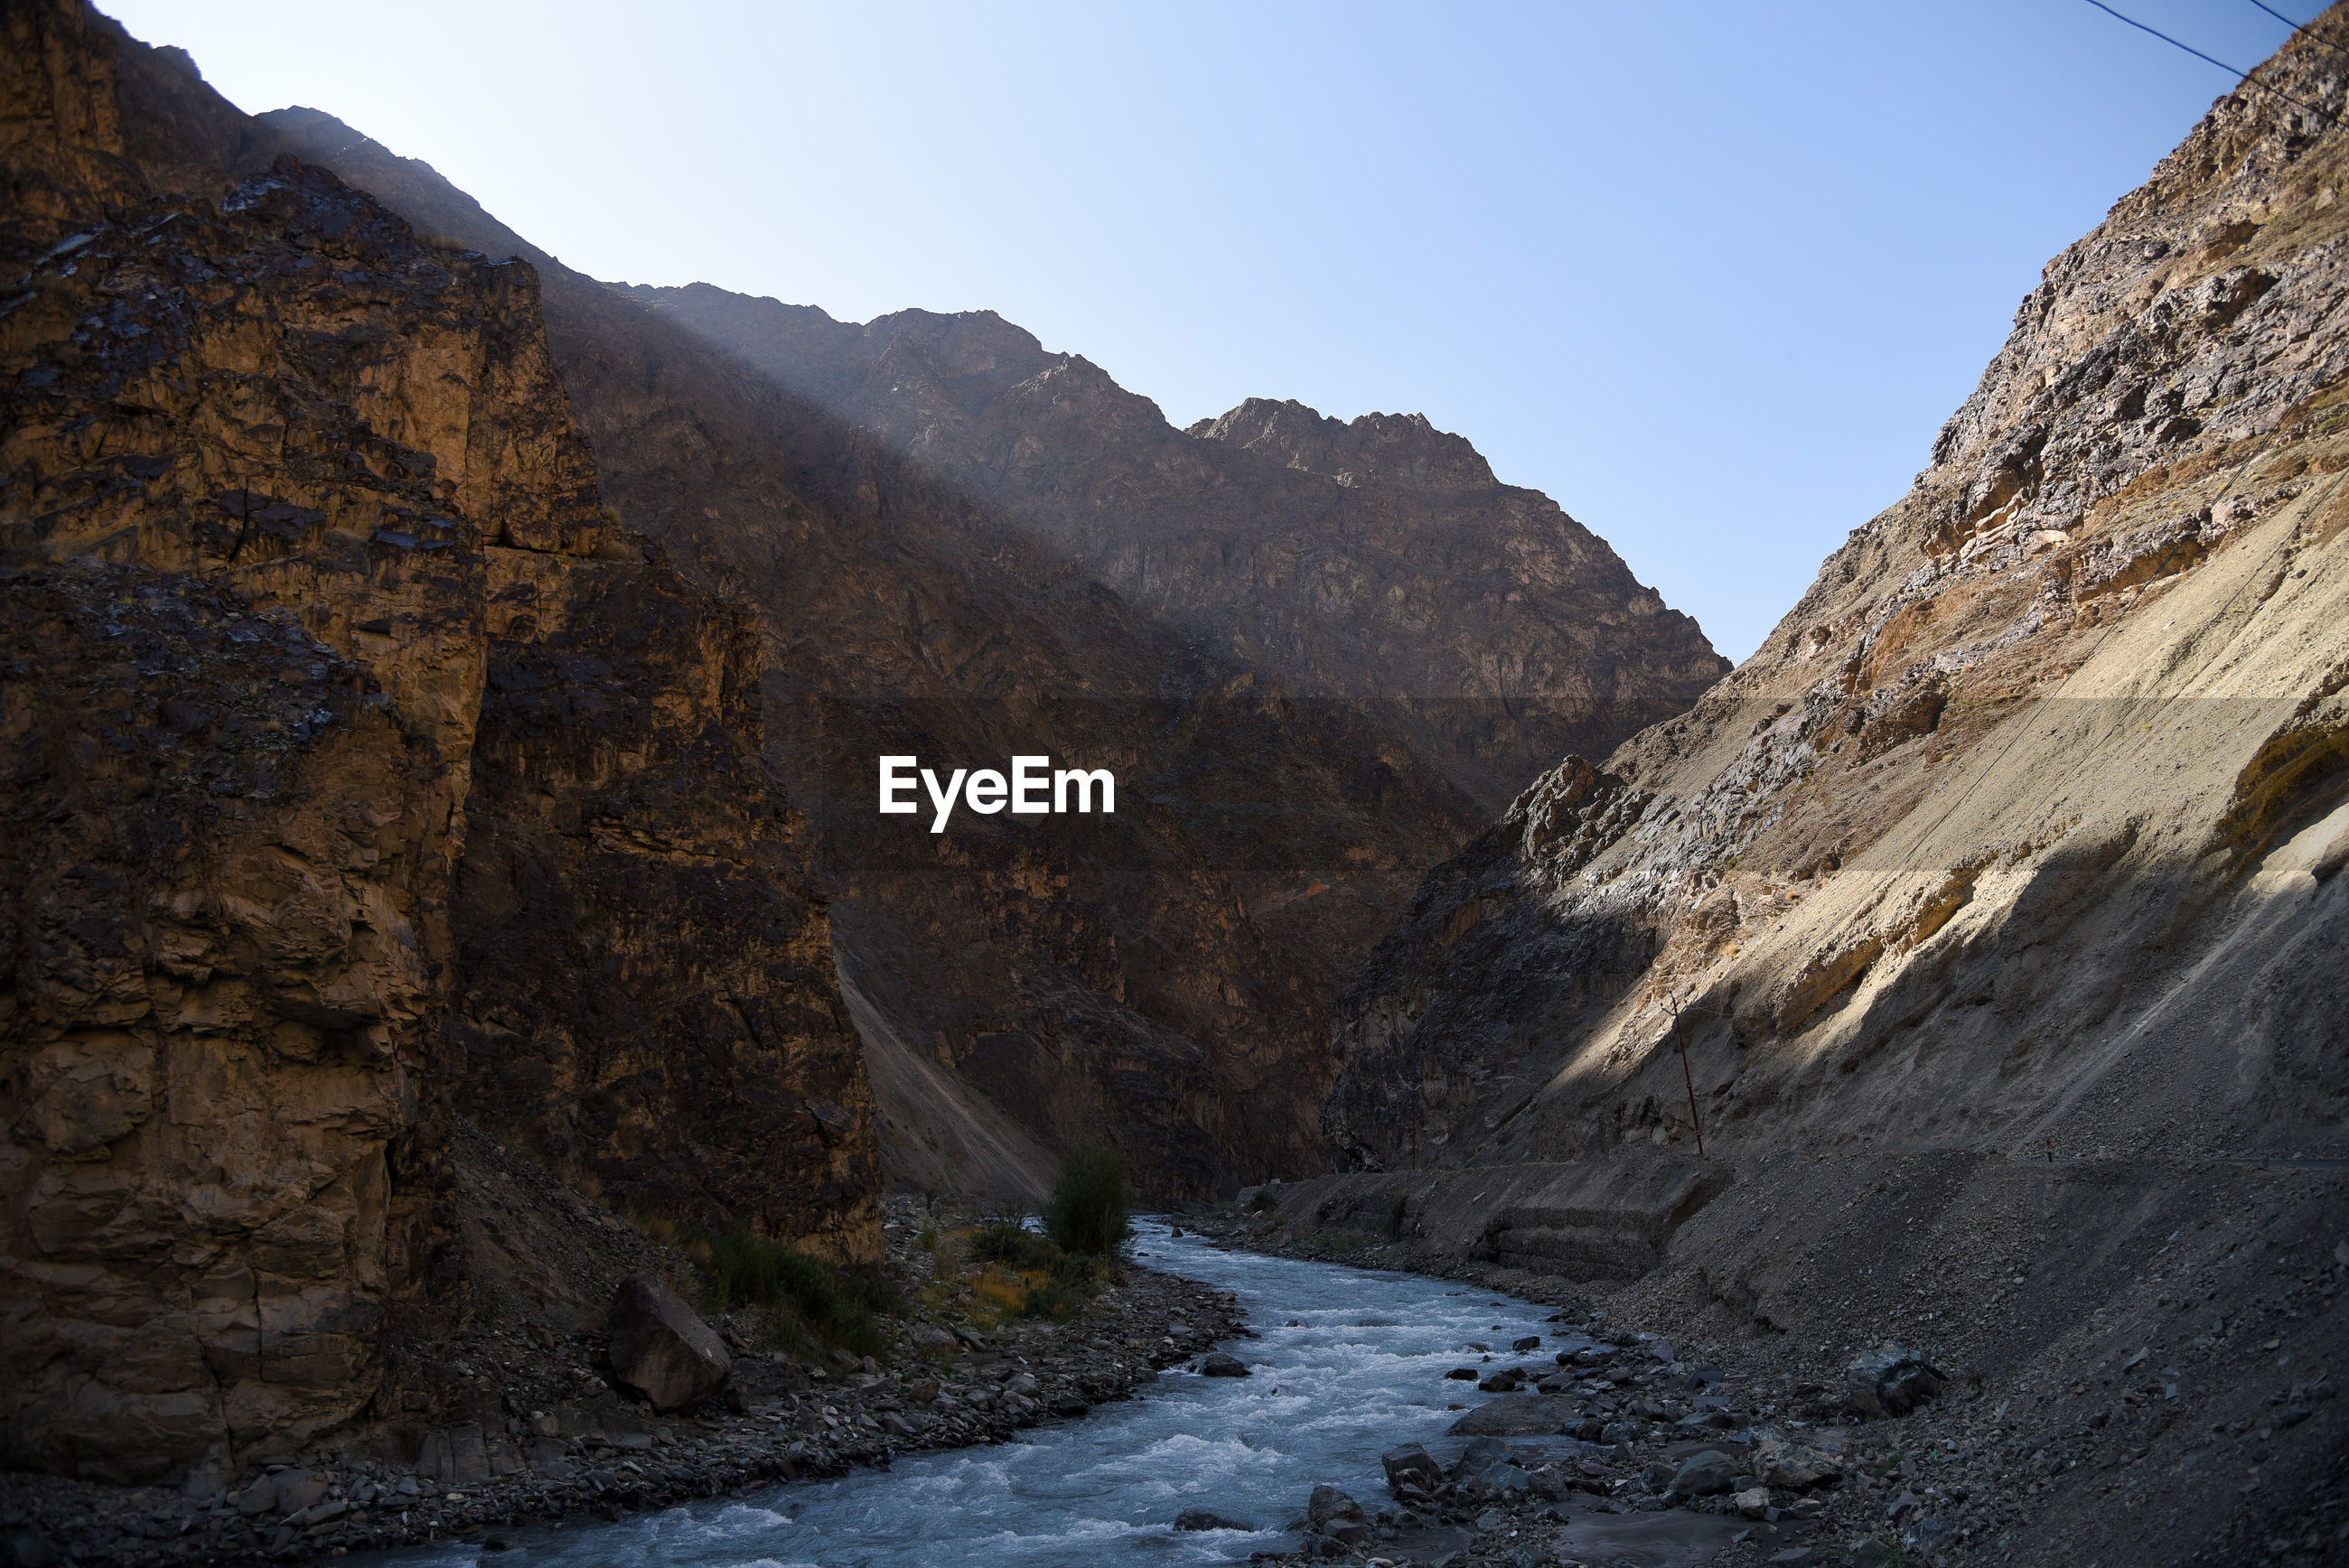 River sindh flow in between mountain next to highway leading to leh-ladakh on 29 june 2020.